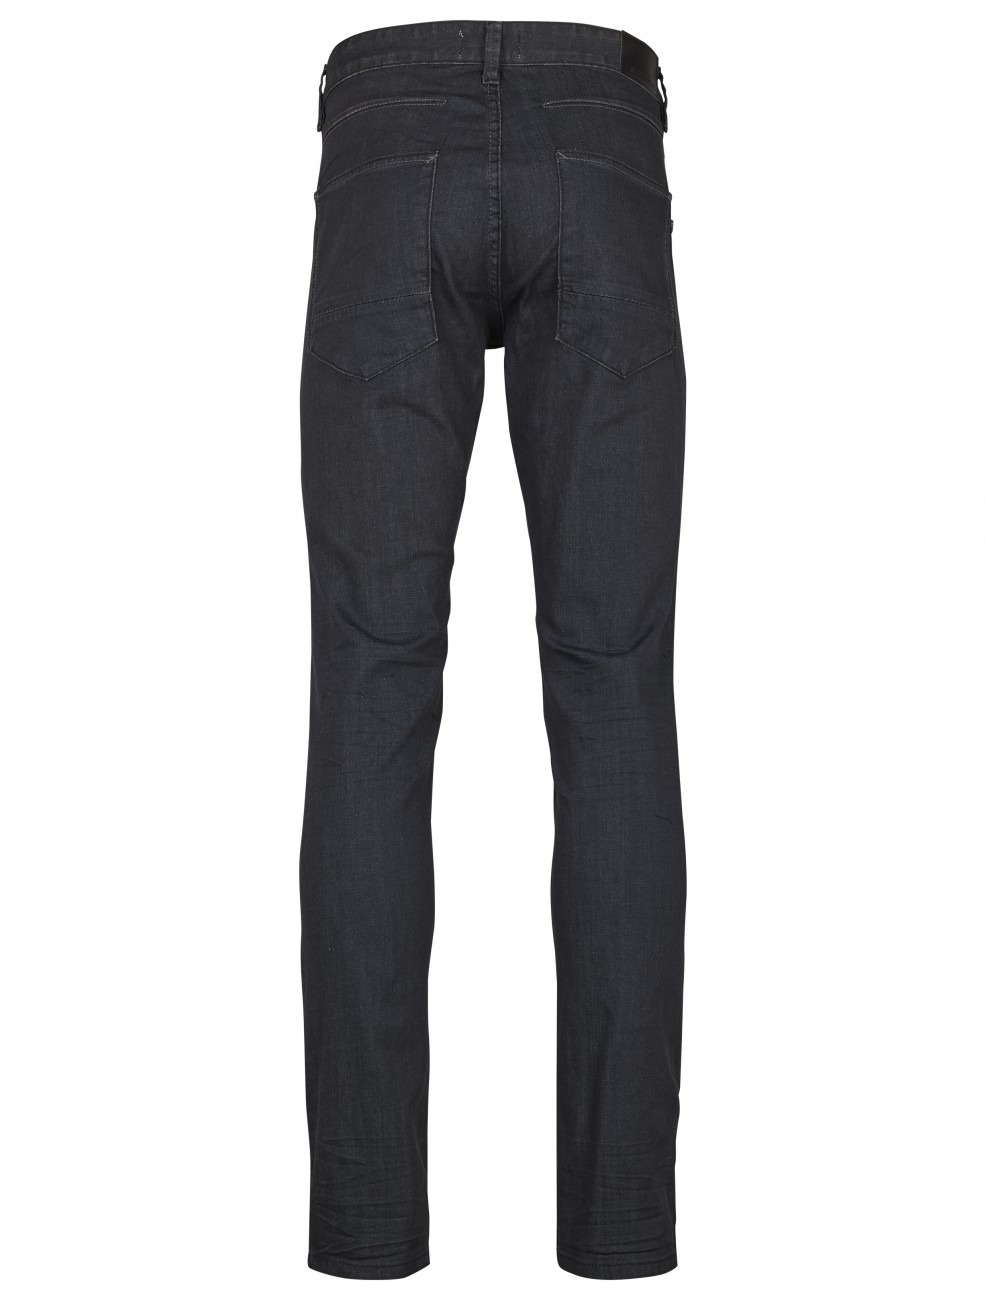 Shine Original Herren Jeans - Tapered Fit - Schwarz - Matt Black